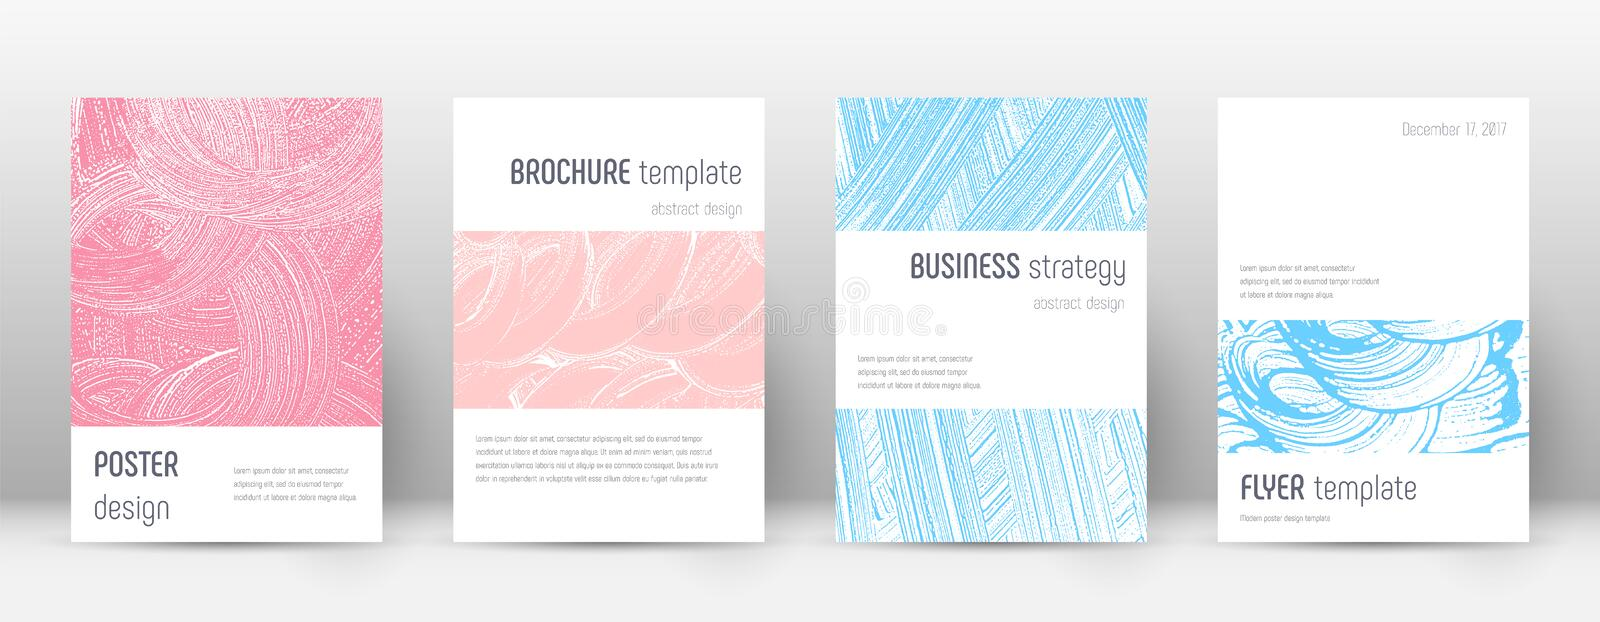 Cover page design template. Minimalistic brochure. Layout. Classy trendy abstract cover page. Pink and blue grunge texture background. Bold poster vector illustration